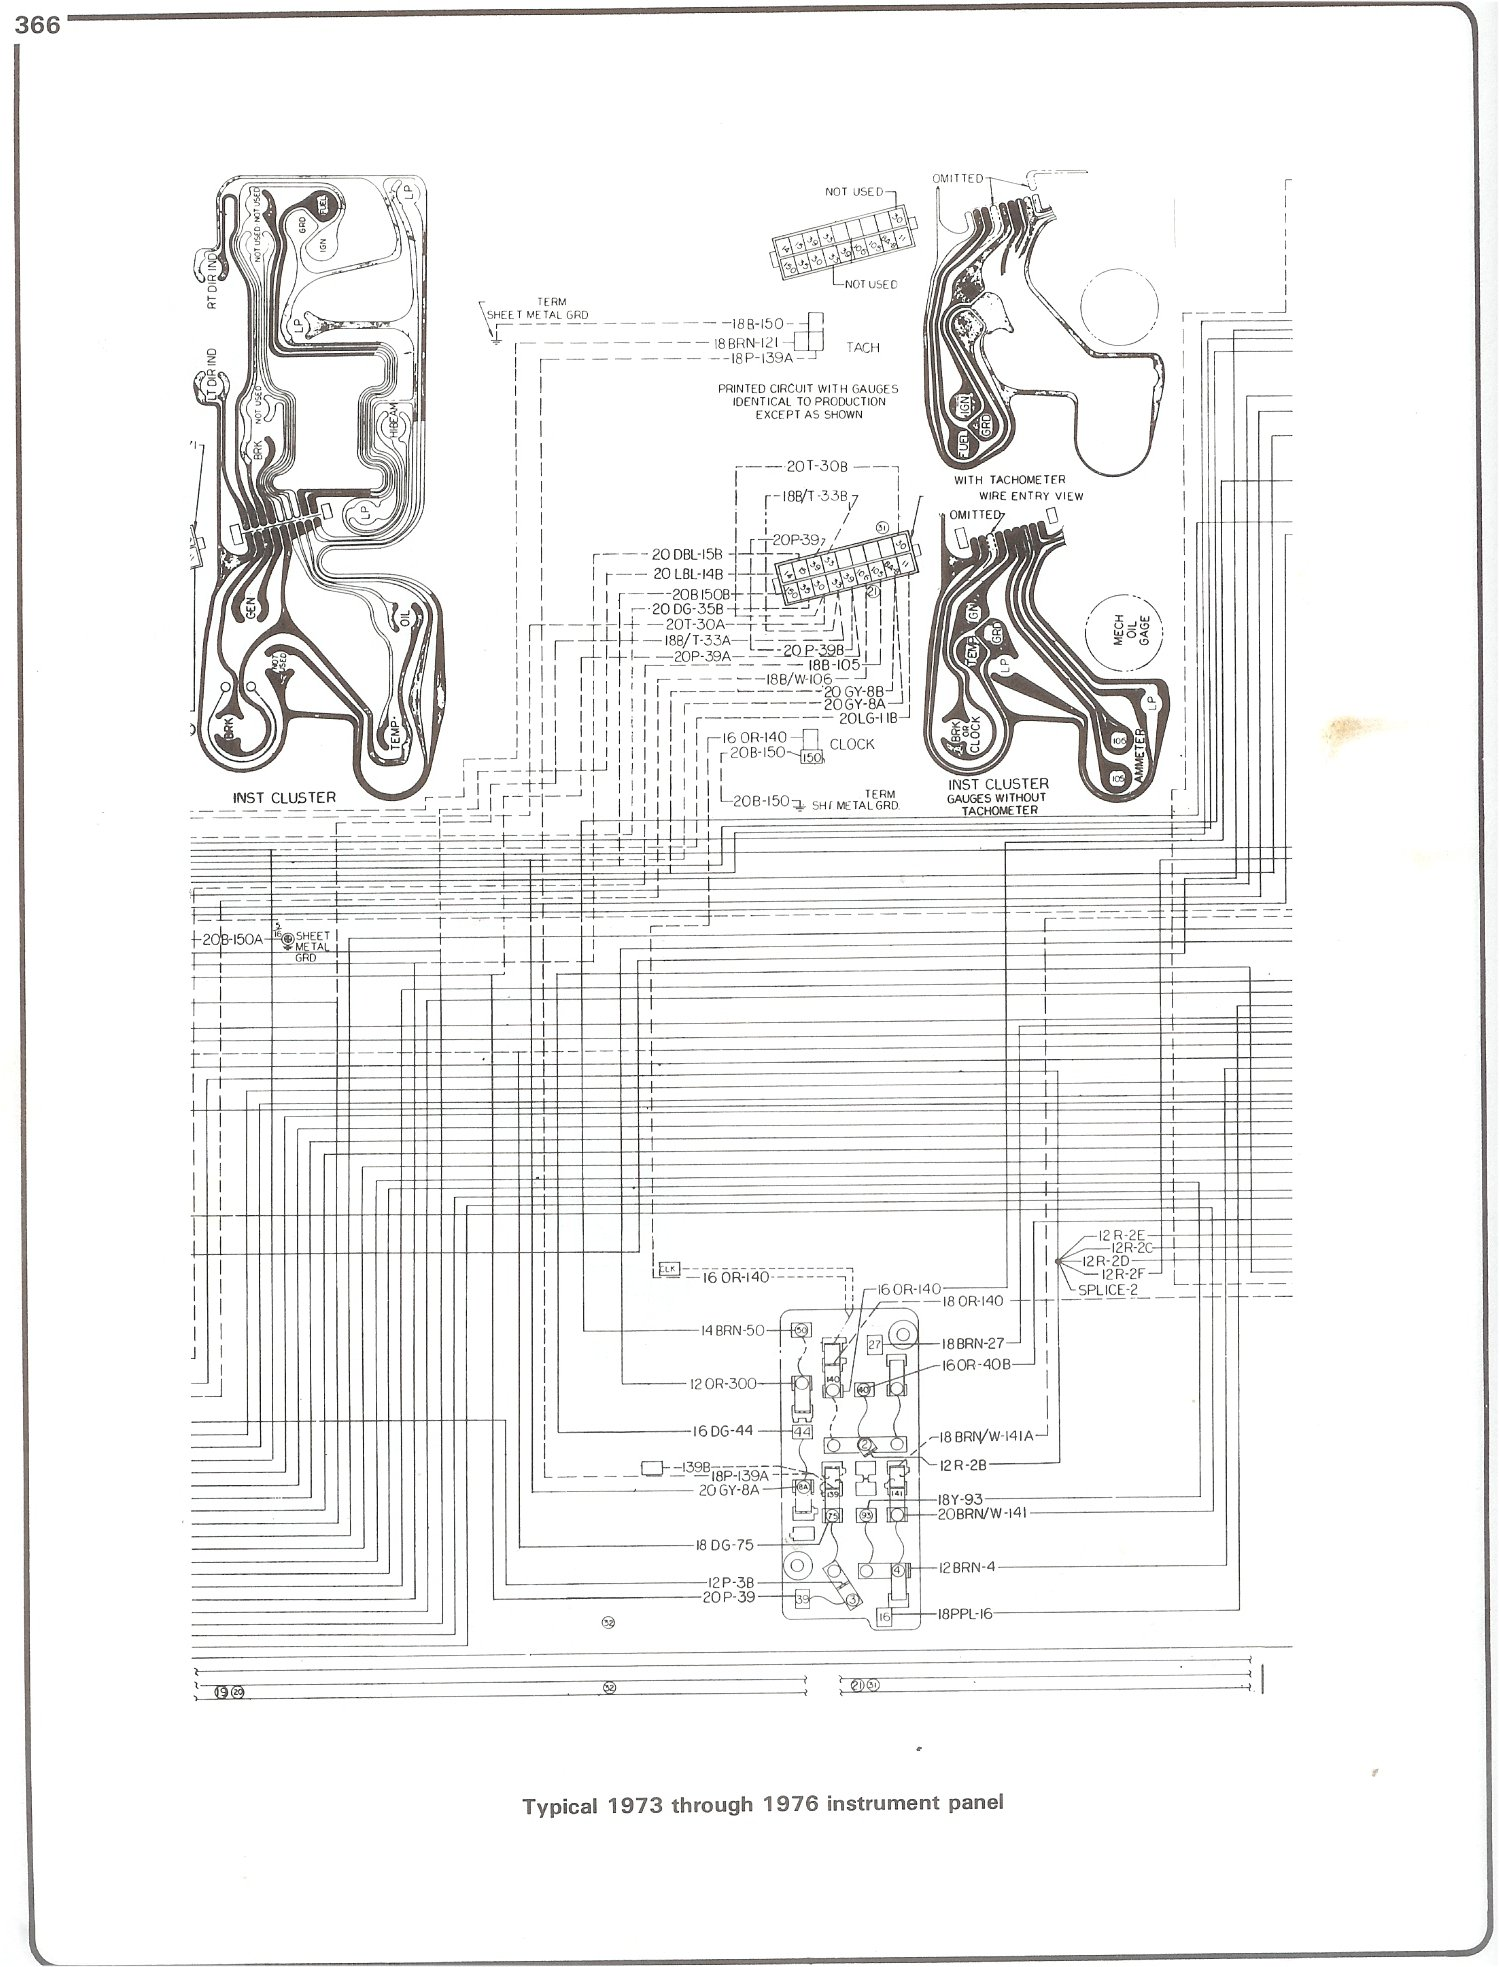 1987 Caprice Wiring Diagrams Diagram Will Be A Thing 86 Chevrolet Complete 73 87 Chevy Steering Wheel 2000 Film